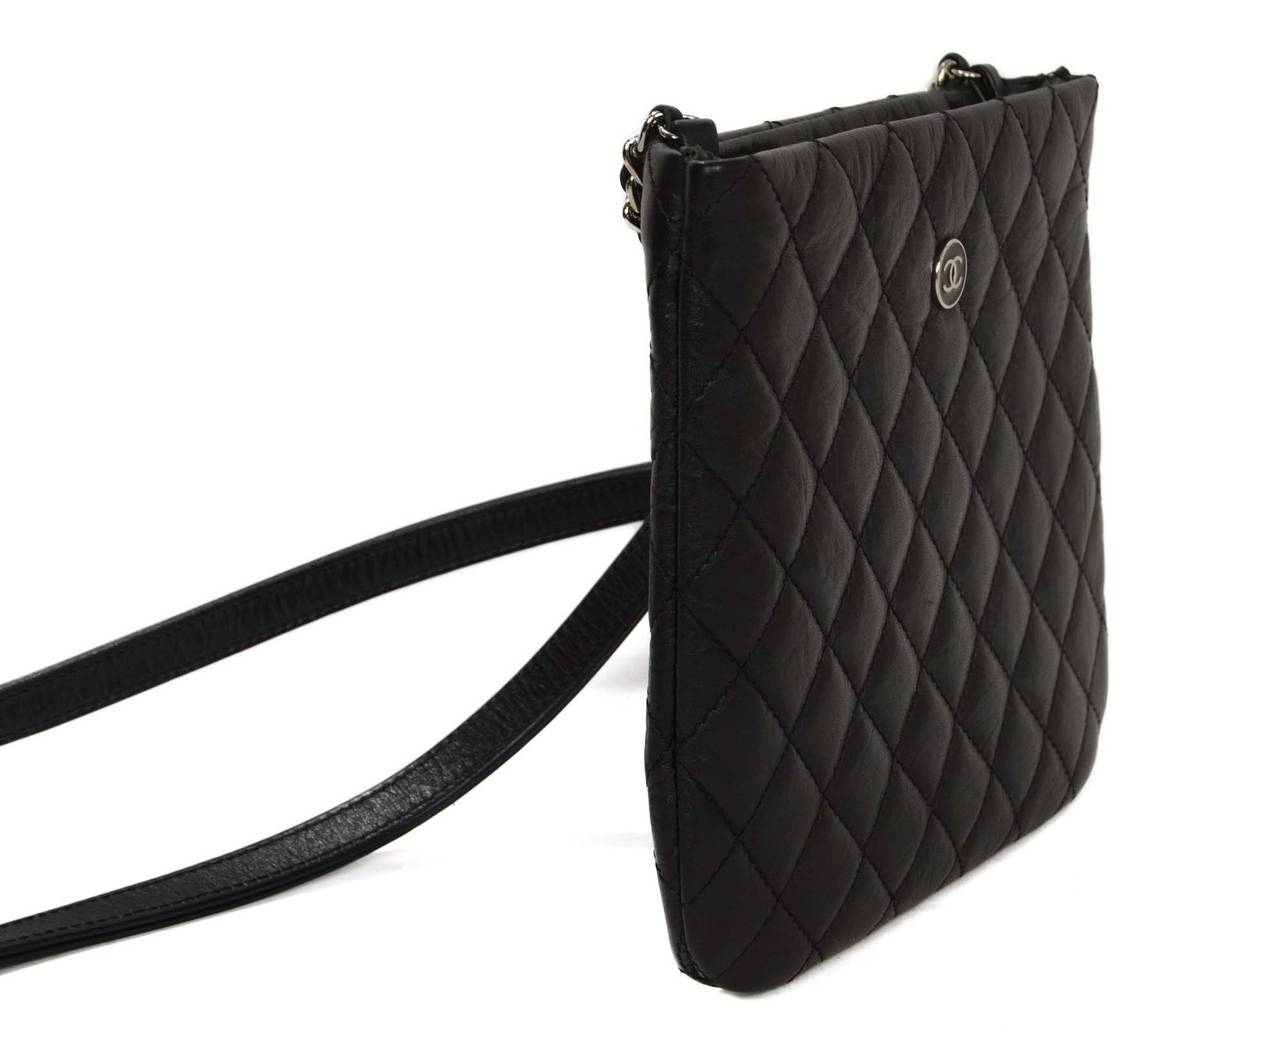 Chanel Quilted Distressed Leather Small Crossbody Bag Features small CC  emblem on front of bag Made 91887a2acdc5d